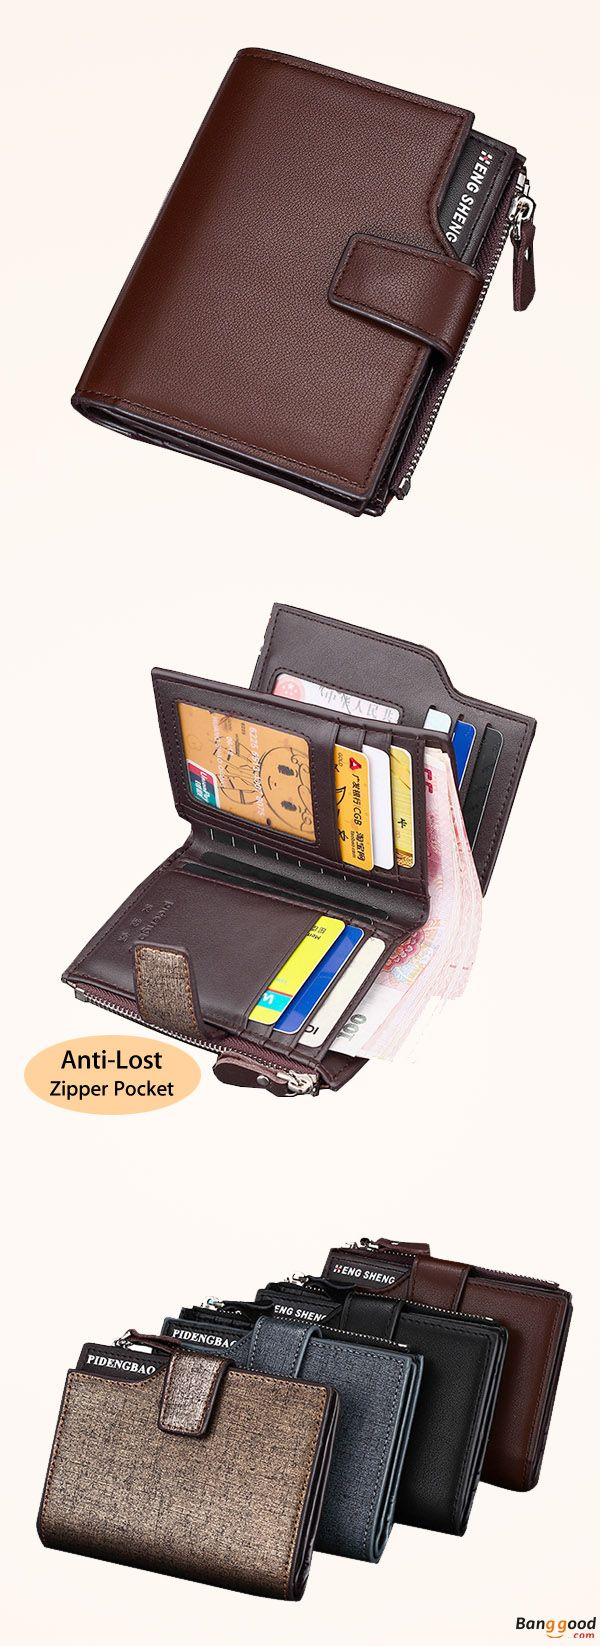 75159ed97 US$12.5 + Free Shipping.Men Wallet, PU Wallet, Leather Wallet, Minimalist  Wallet, Casual Business Wallet, Tri-fold Wallet, Card Holder.